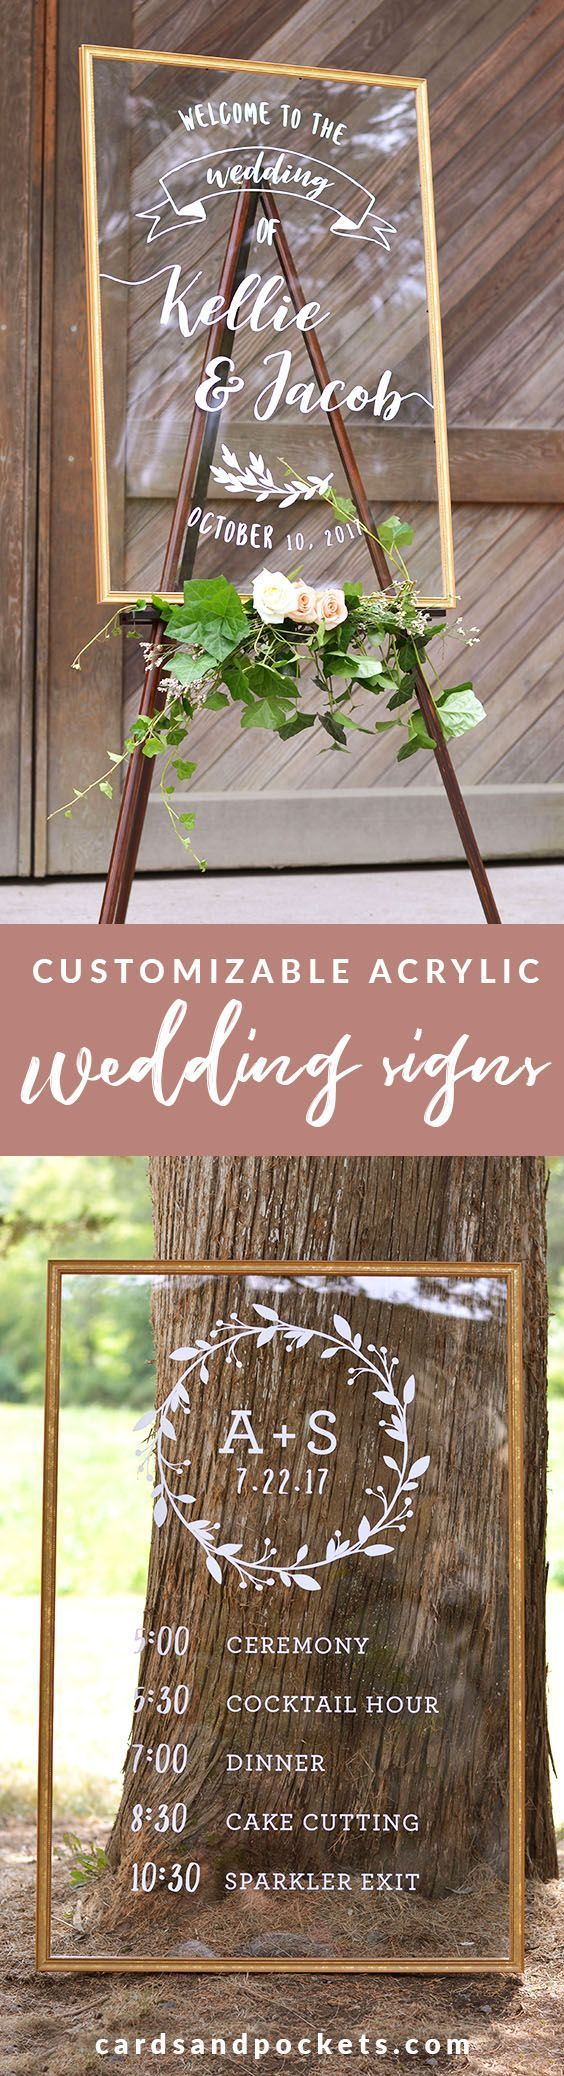 Acrylic wedding signs - the perfect DIY wedding decor for your ceremony and reception. Acrylic is a light, budget-friendly option that has the elegant look of a mirror sign. Personalize your own welcome sign, timeline or bible verse sign at: http://www.cardsandpockets.com/custom-acrylic-wedding-signs.aspx